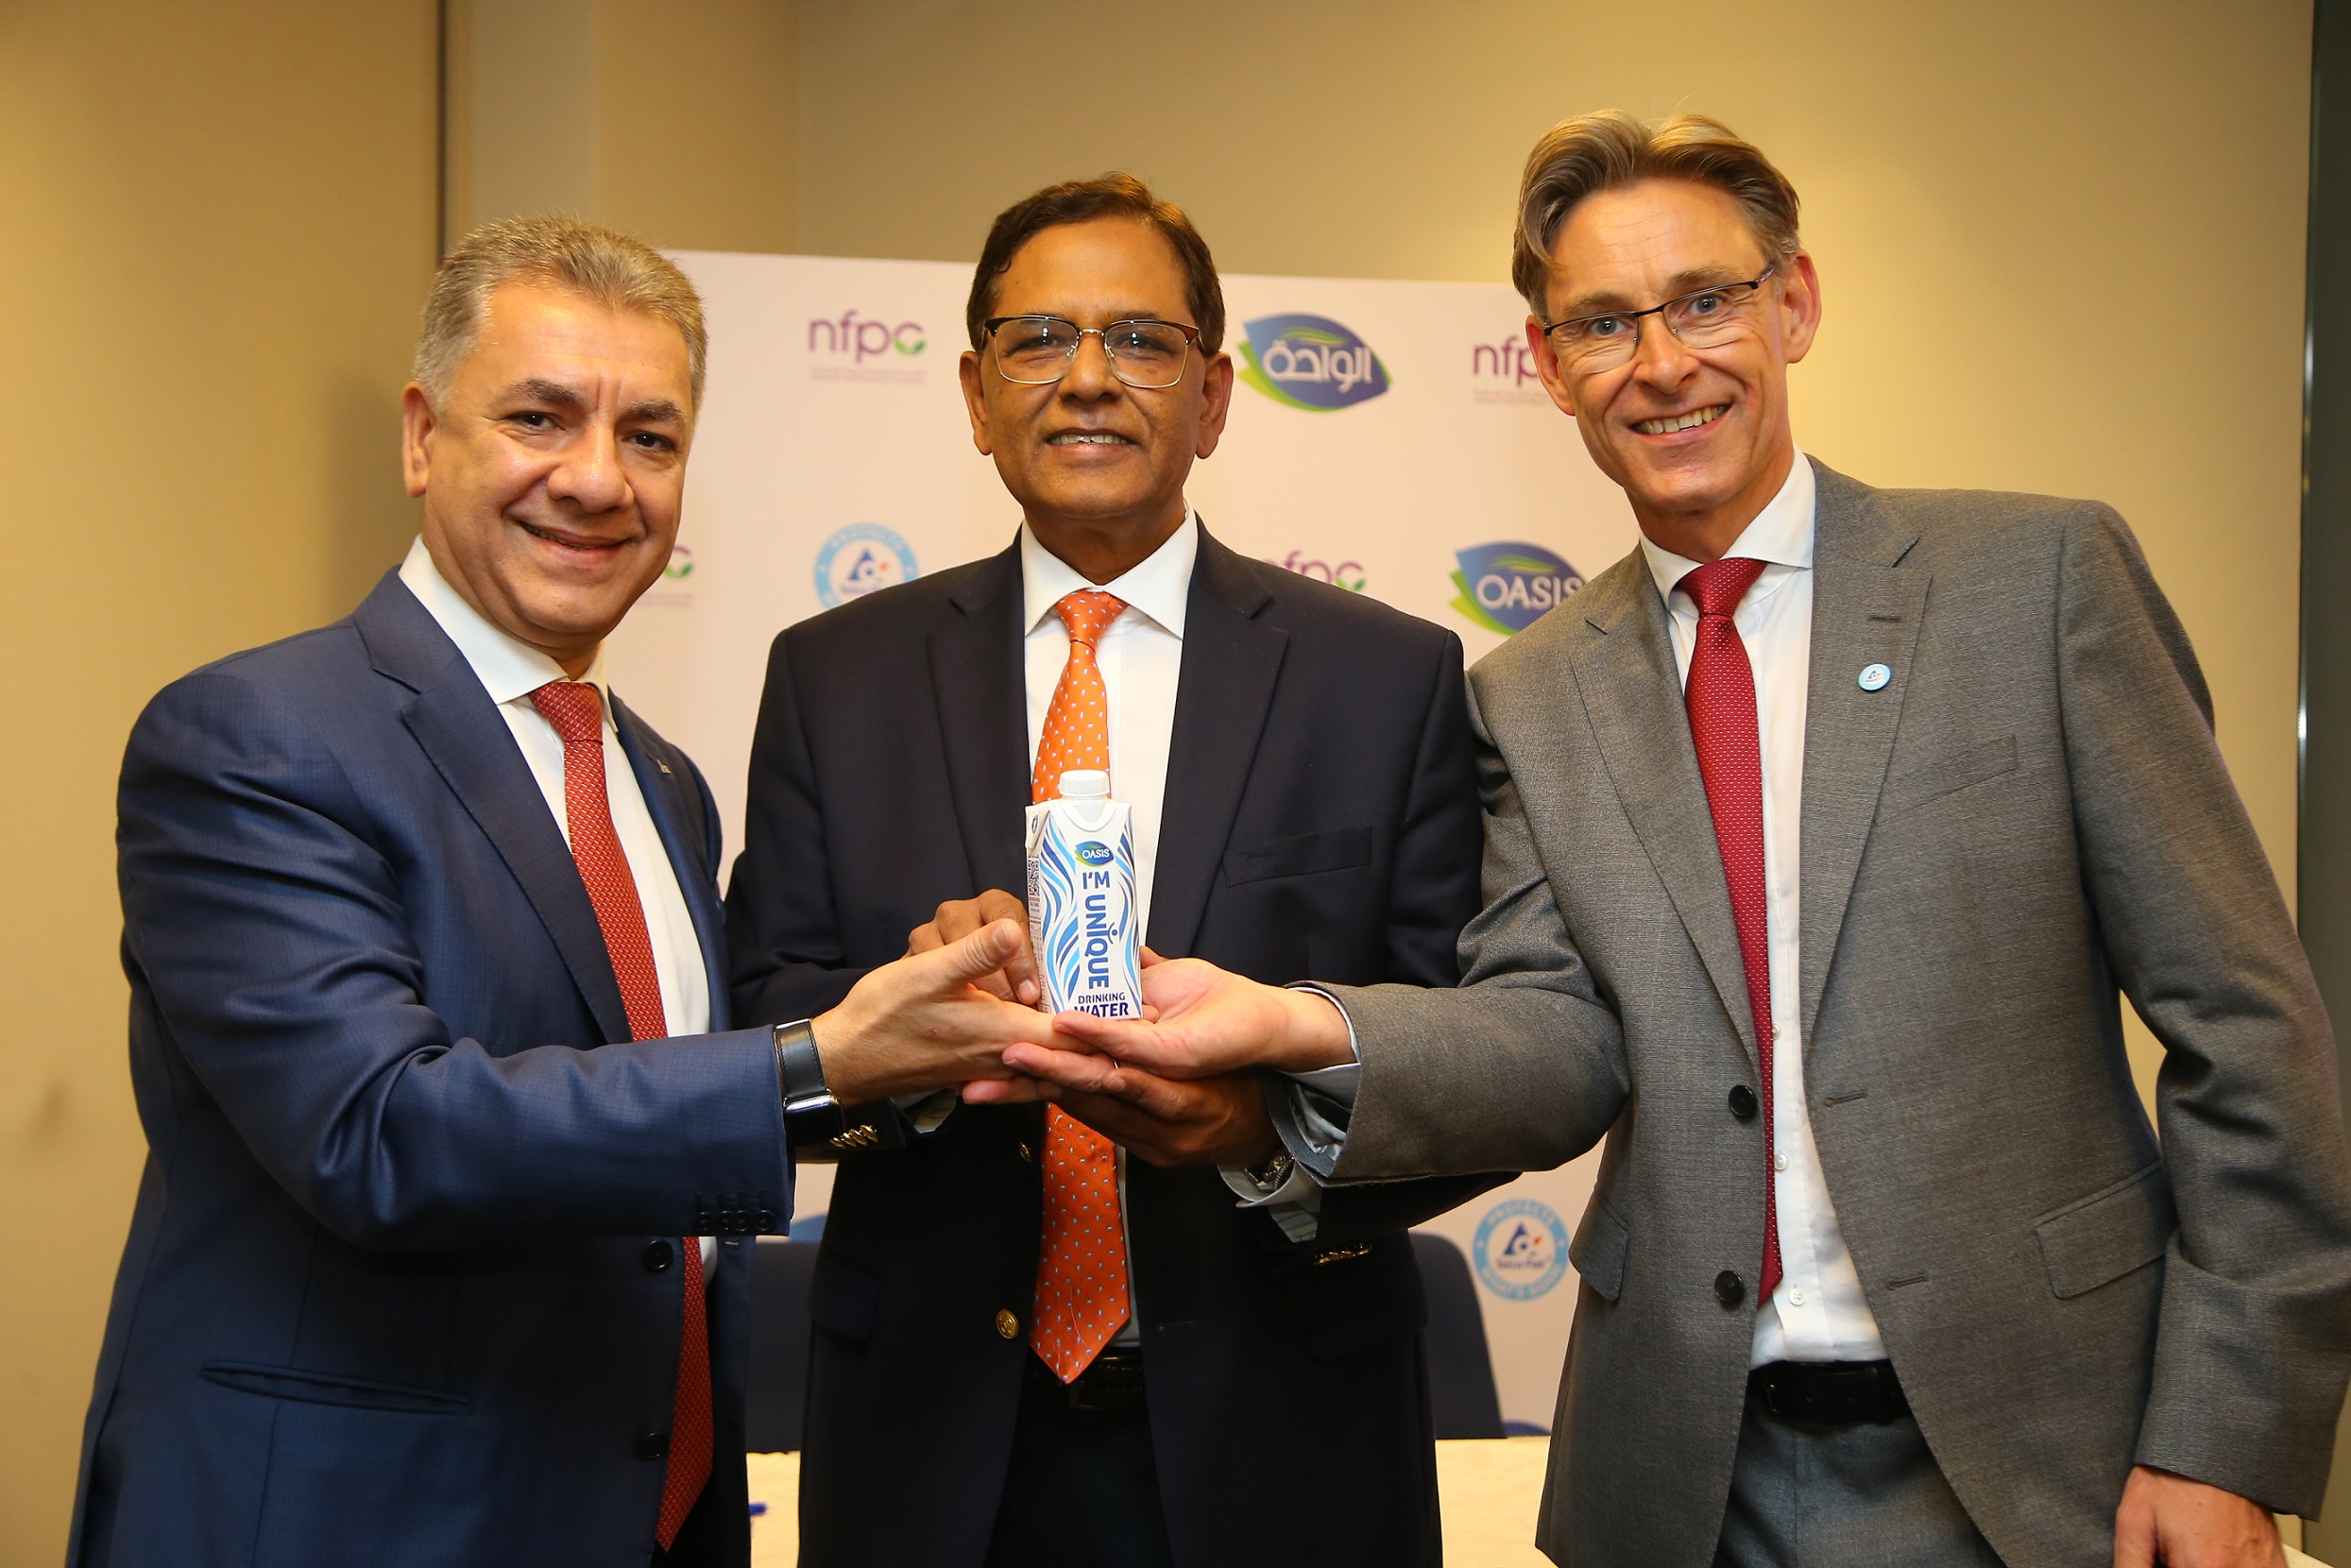 A game changing, GCC first initiative is unveiled at Gulfood 2020: Oasis Water now available in Tetra Pak packaging